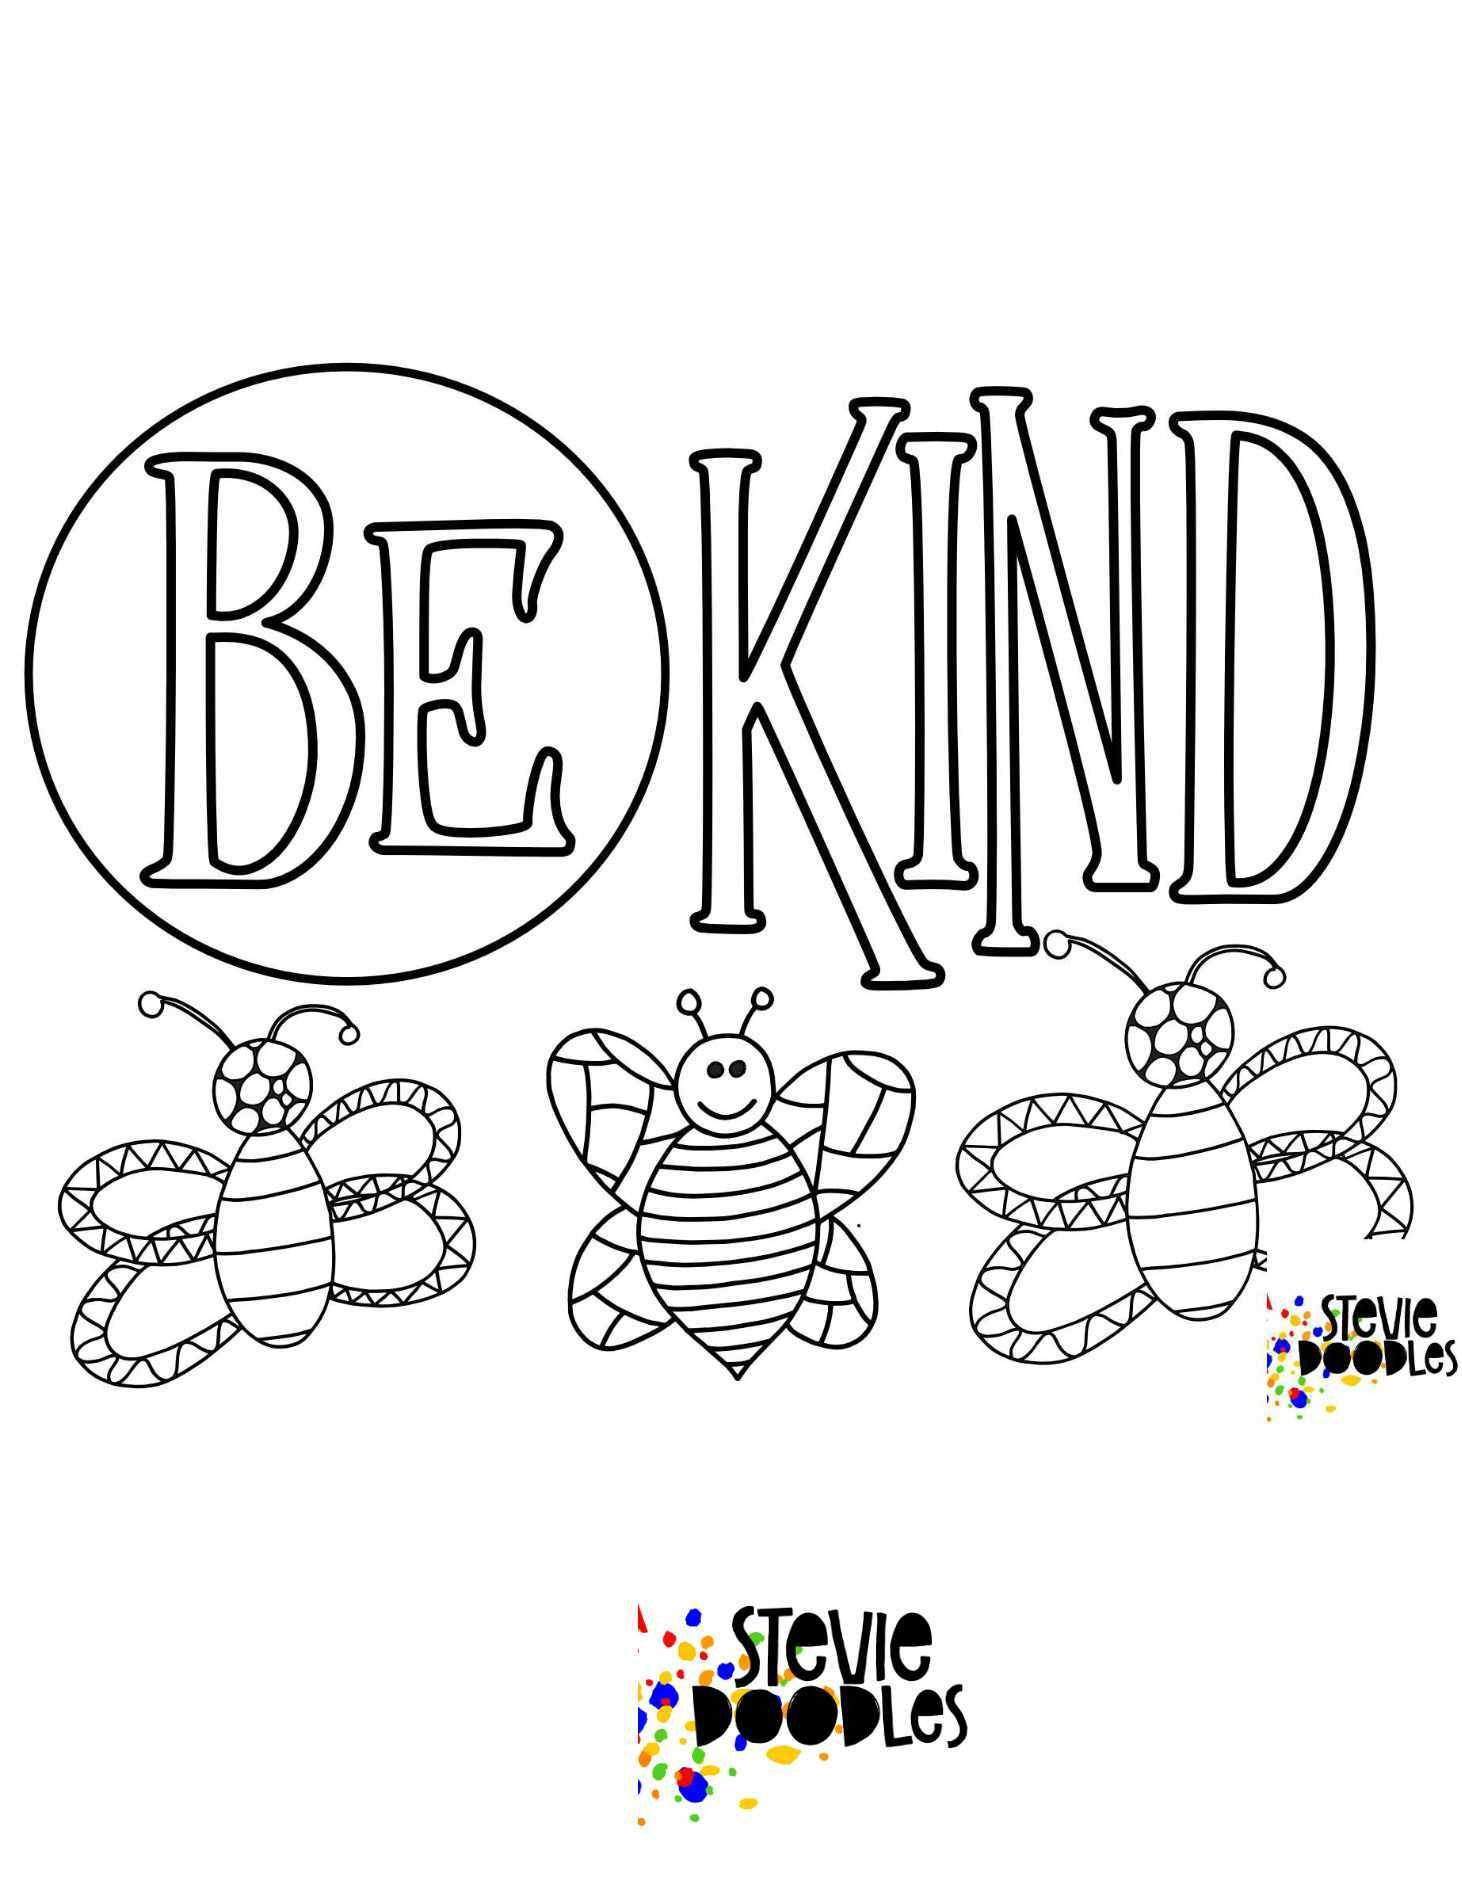 6 Free Be Kind Printable Coloring Pages Stevie Doodles Bee Coloring Pages Free Printable Coloring Pages Free Kids Coloring Pages